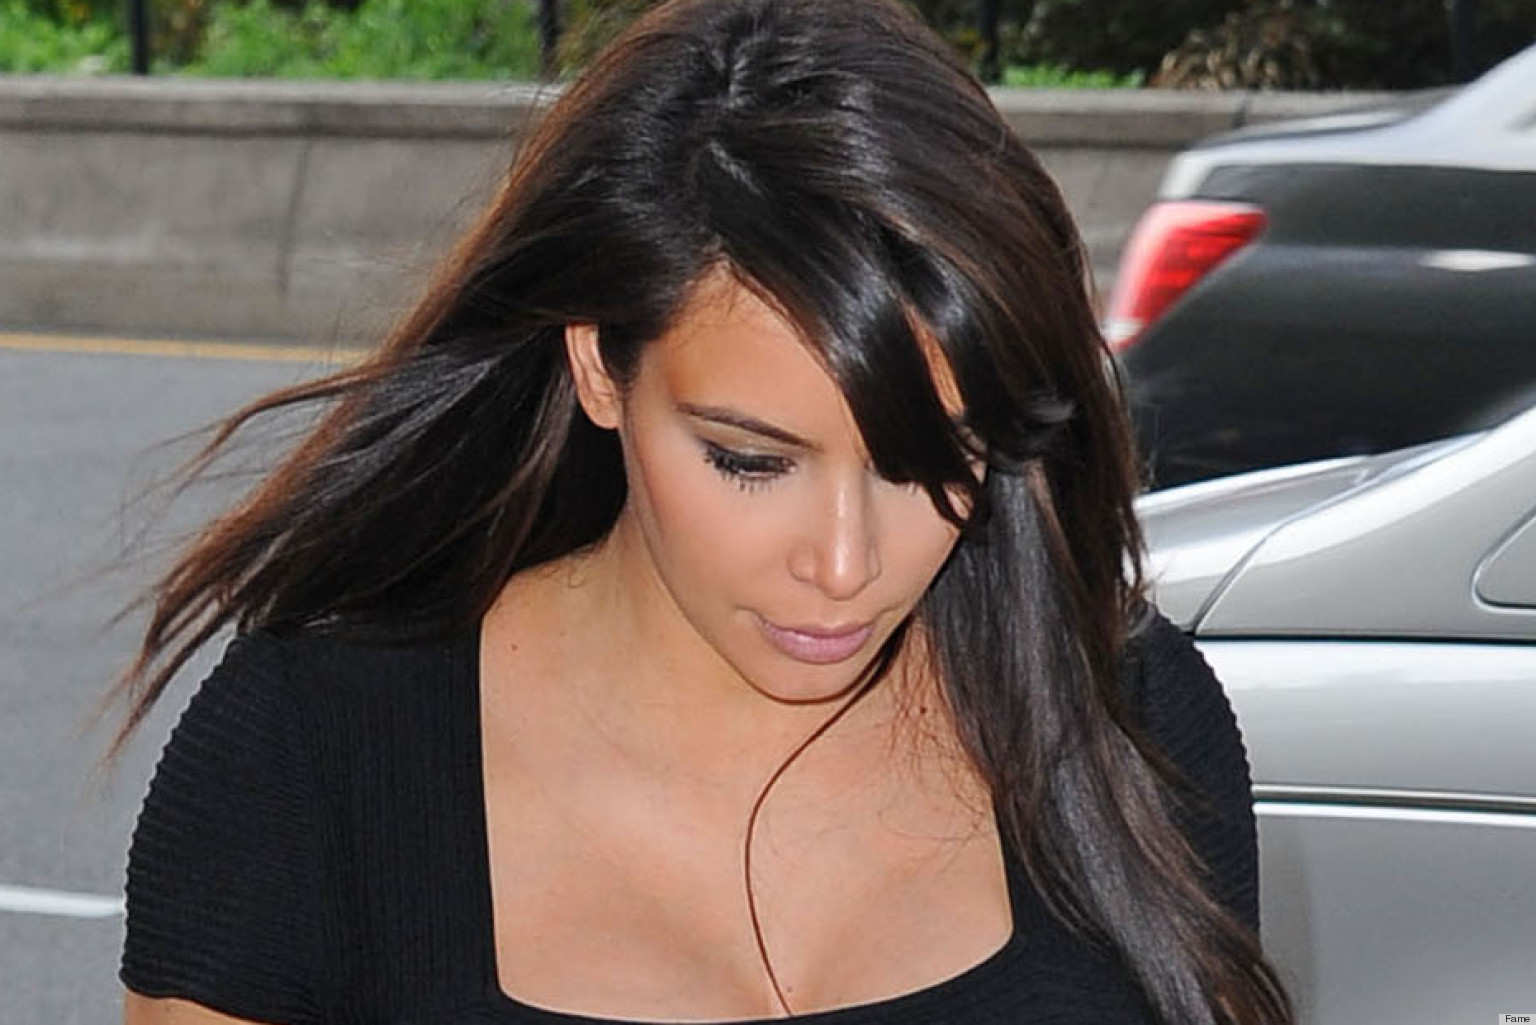 PHOTOS: Kim Kardashian Could Really Use A Slip